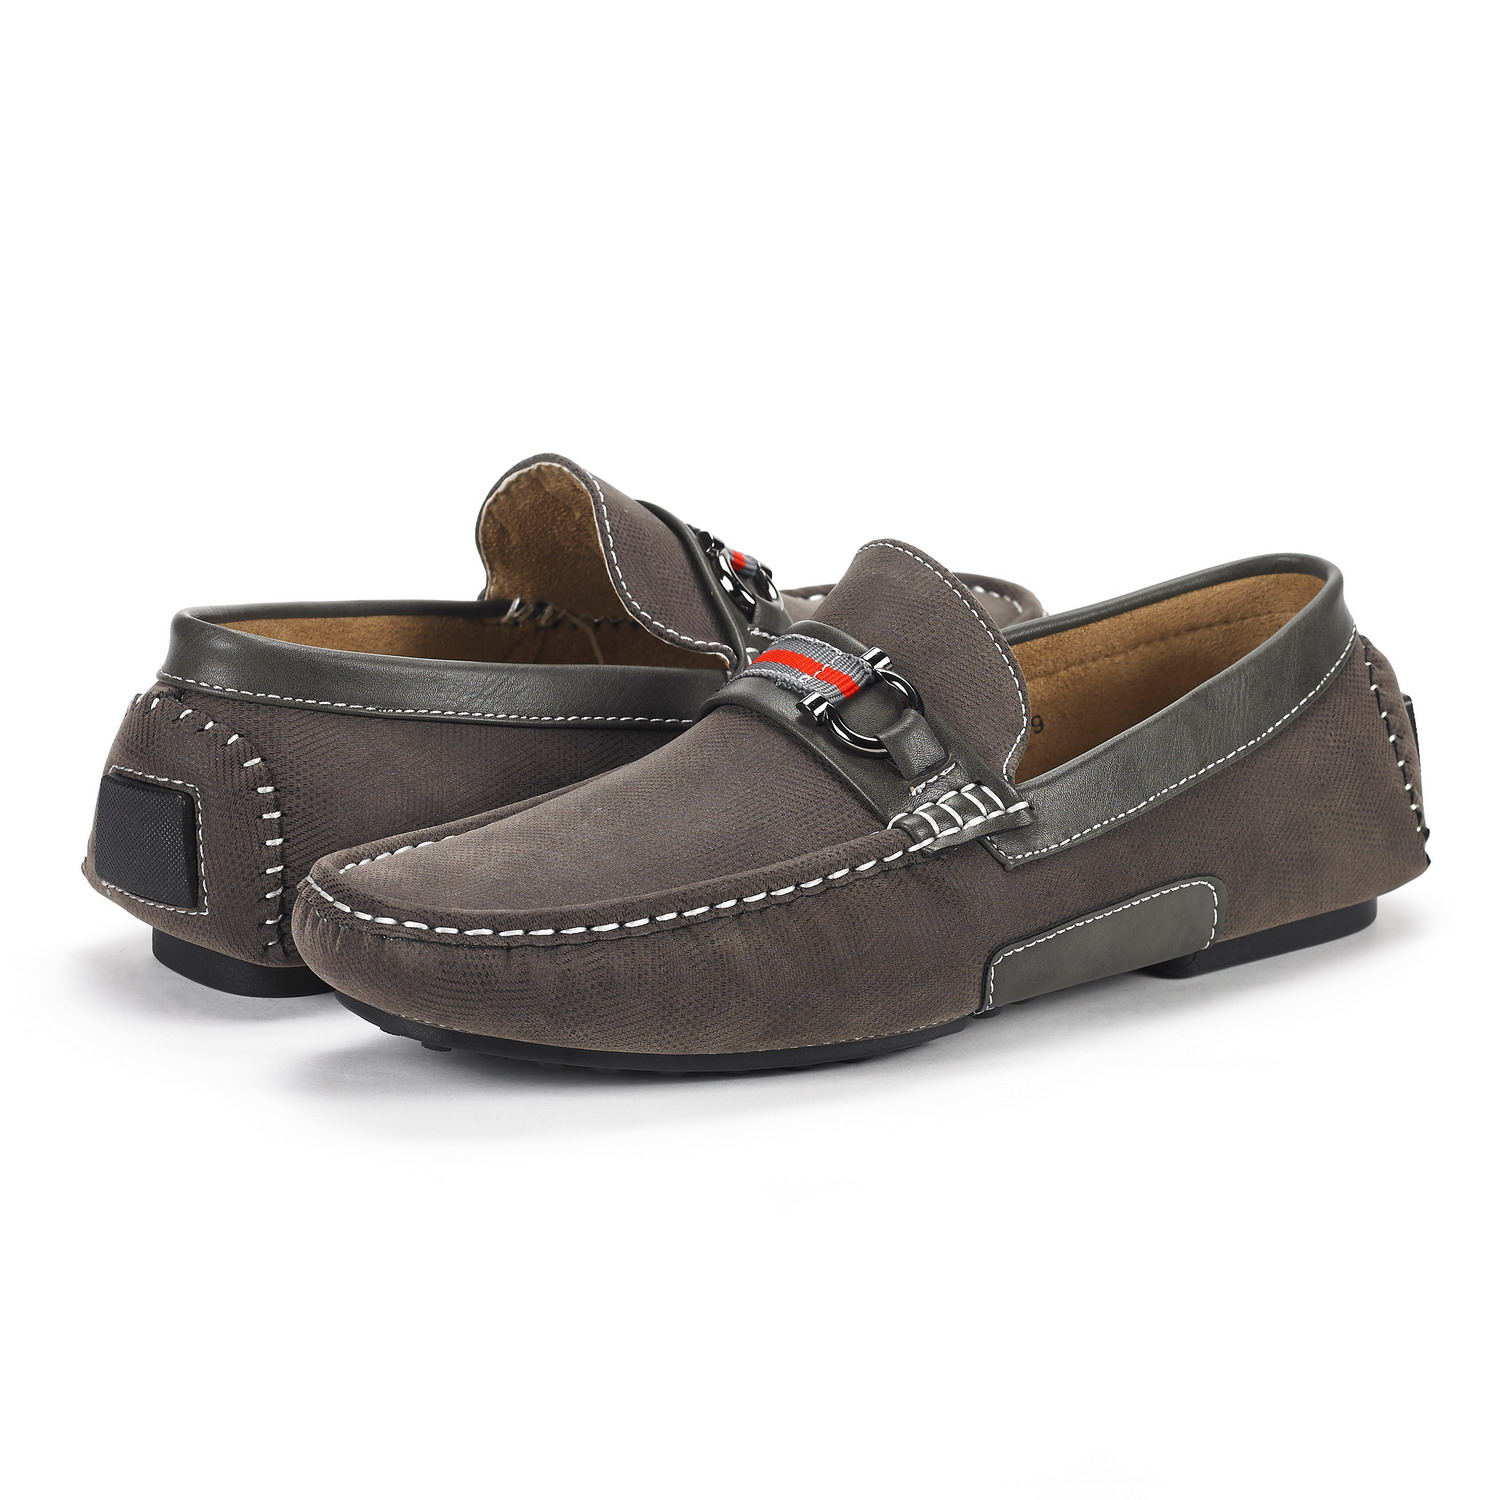 Bruno-Marc-Men-Casual-Driving-Loafers-Breathable-Antiskid-Slip-On-Moccasins-Shoe thumbnail 23